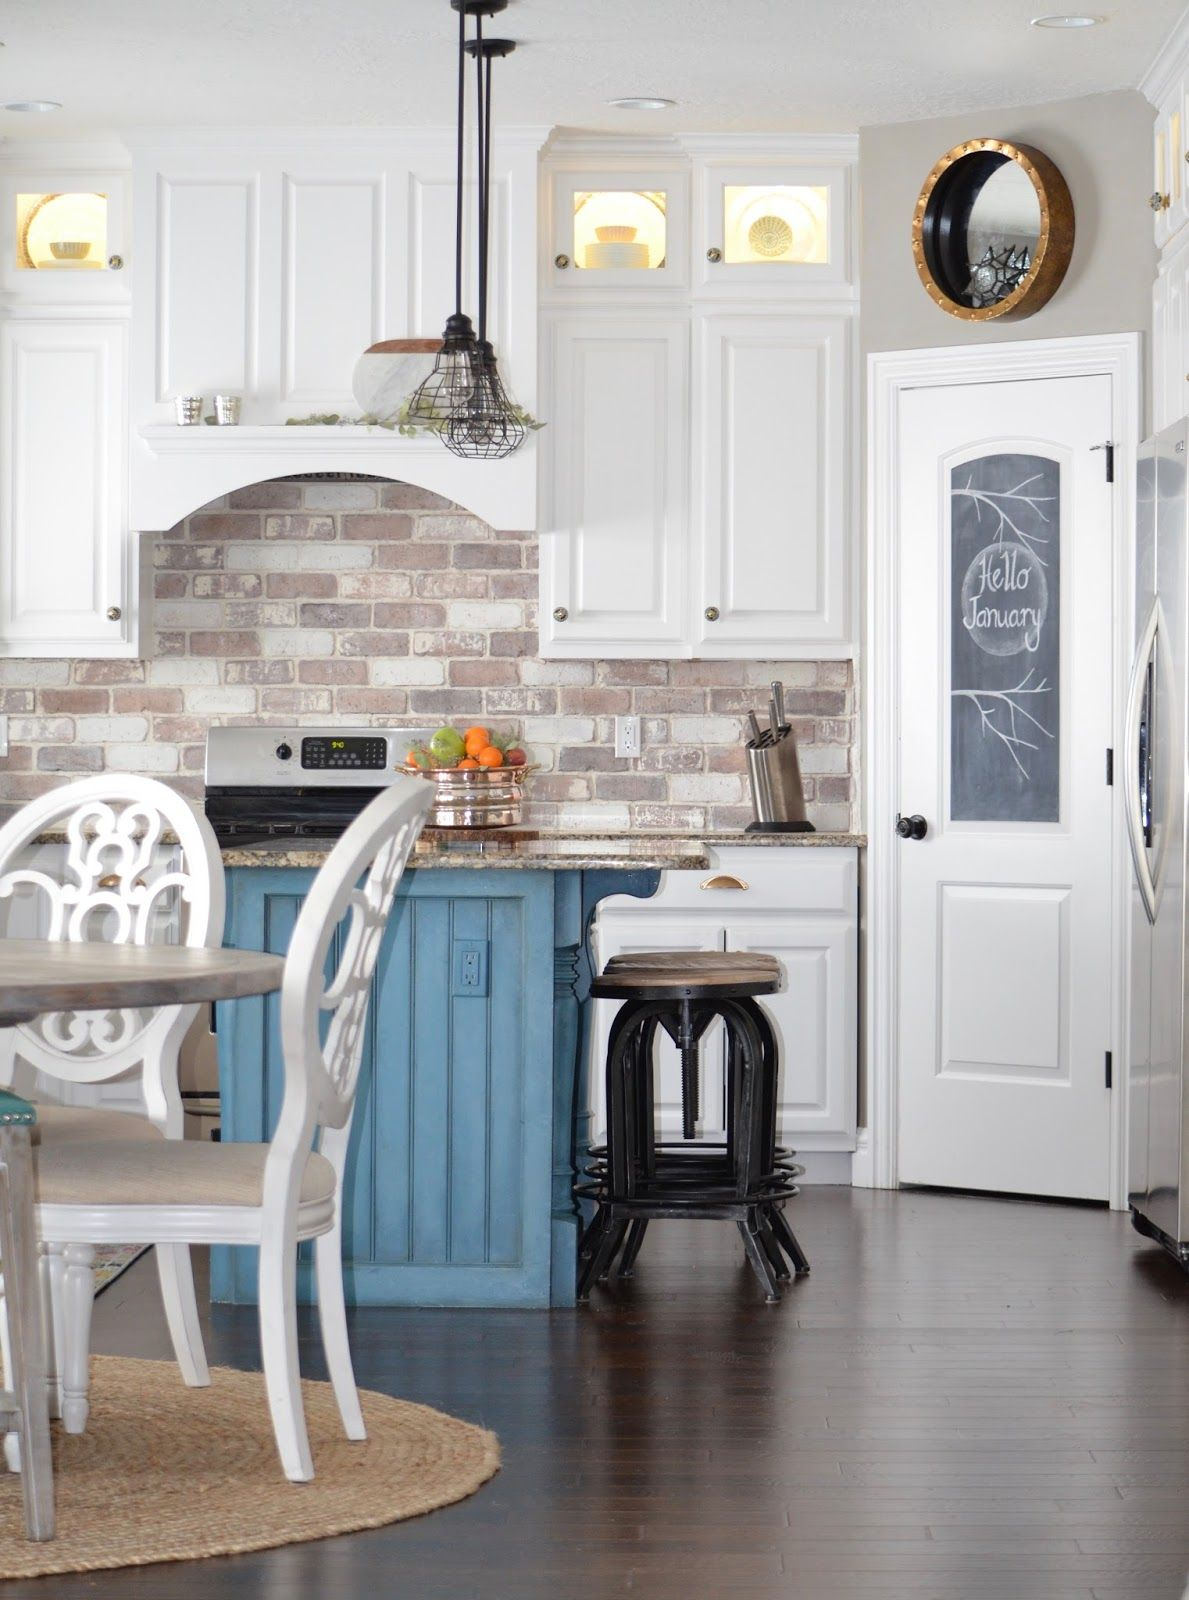 Farmhouse Kitchen With Brick Backsplash